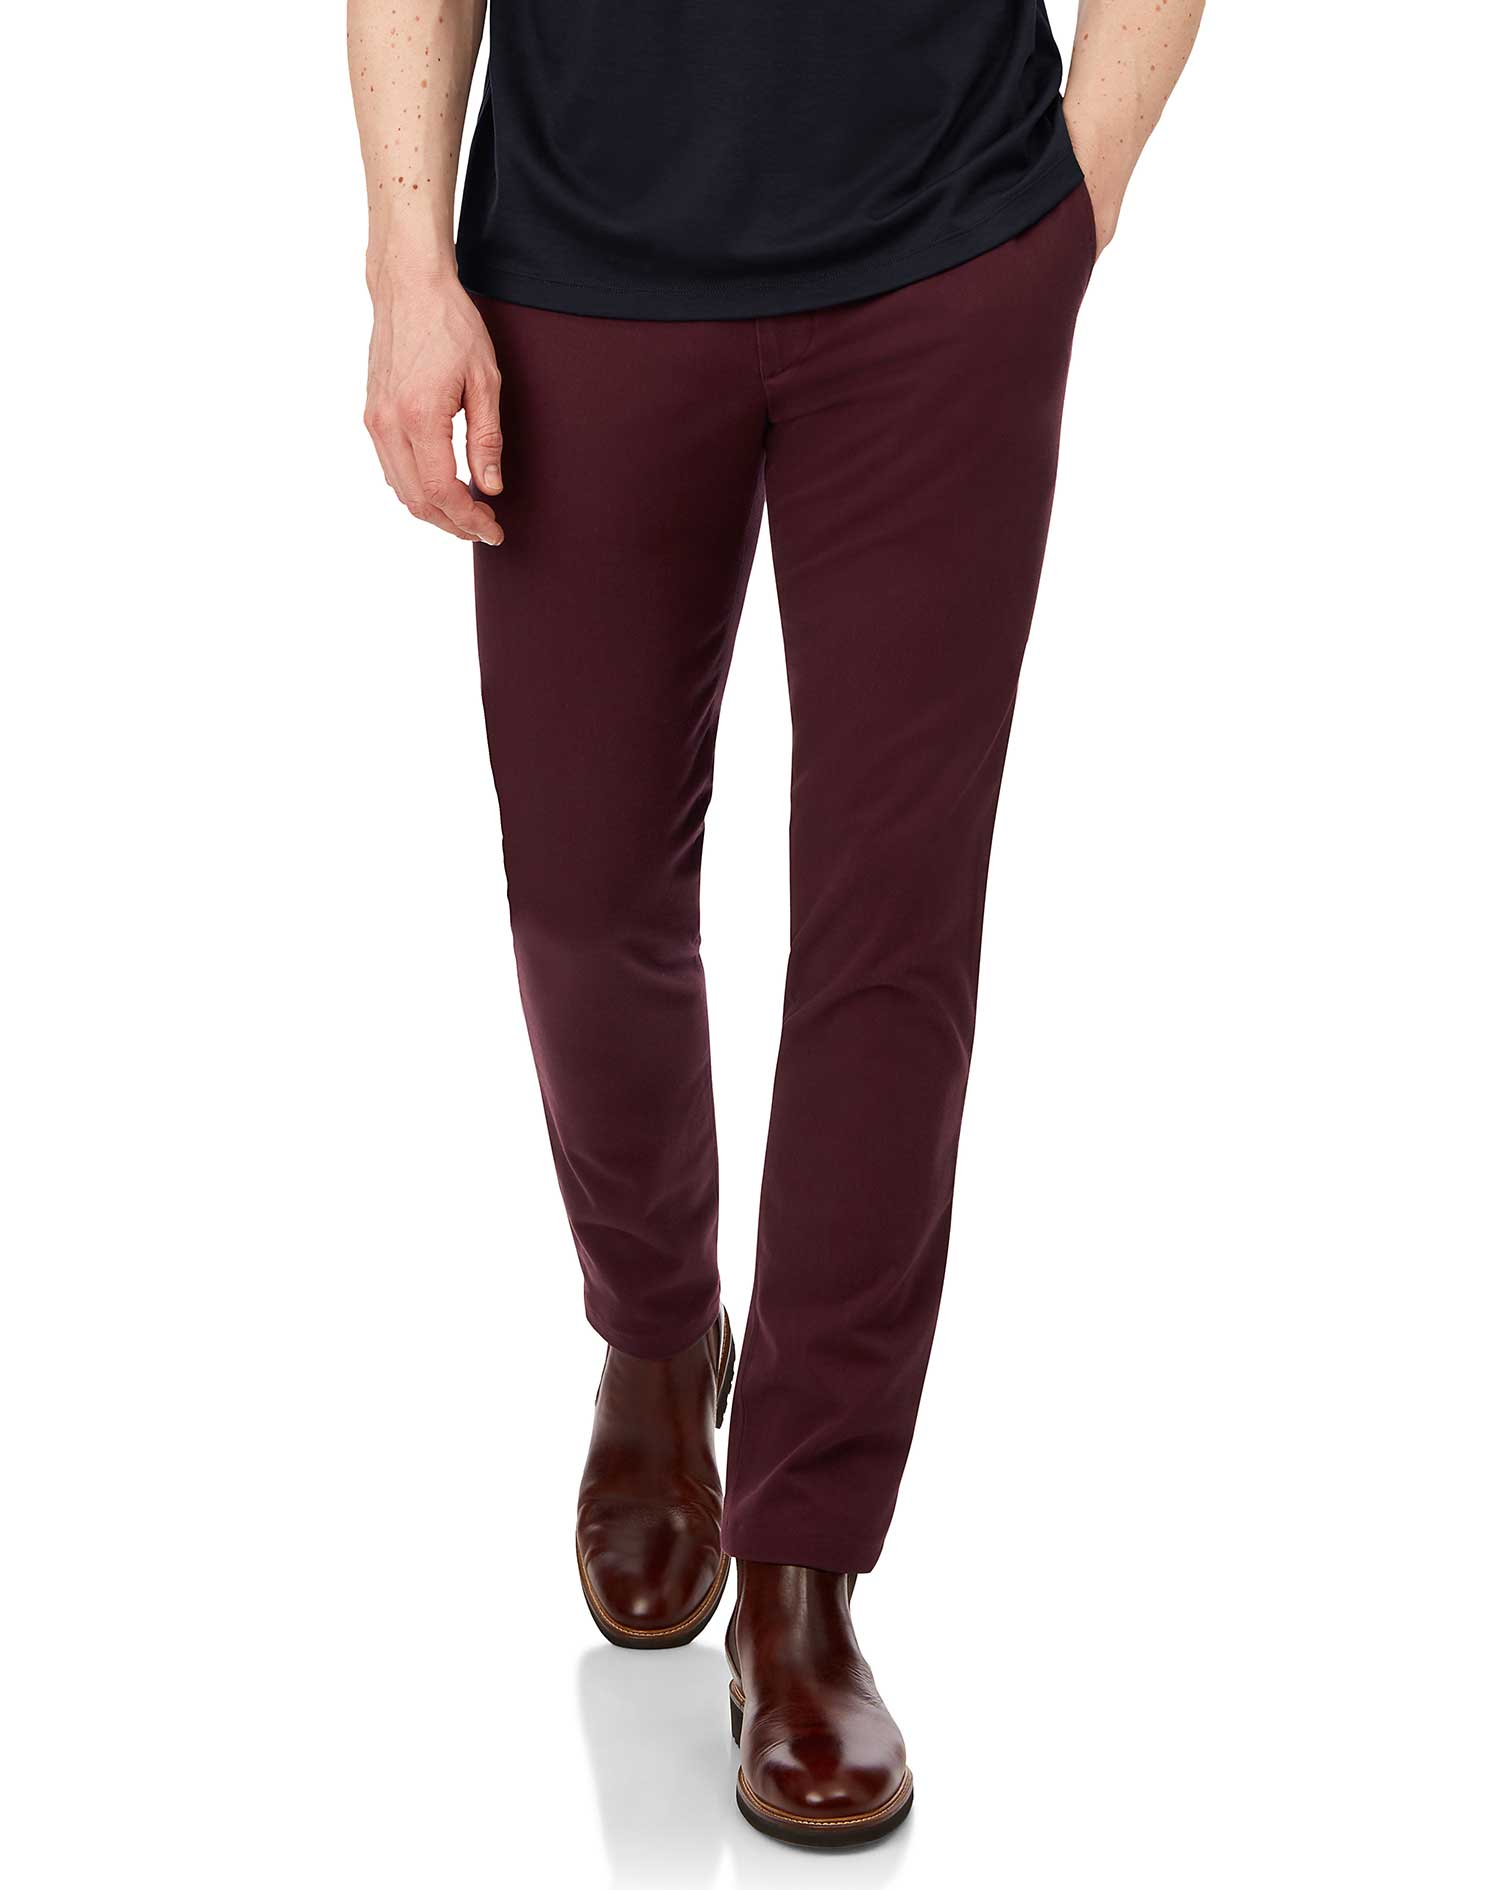 Berry Non-Iron Ultimate Cotton Chino Trousers Size W32 L34 by Charles Tyrwhitt